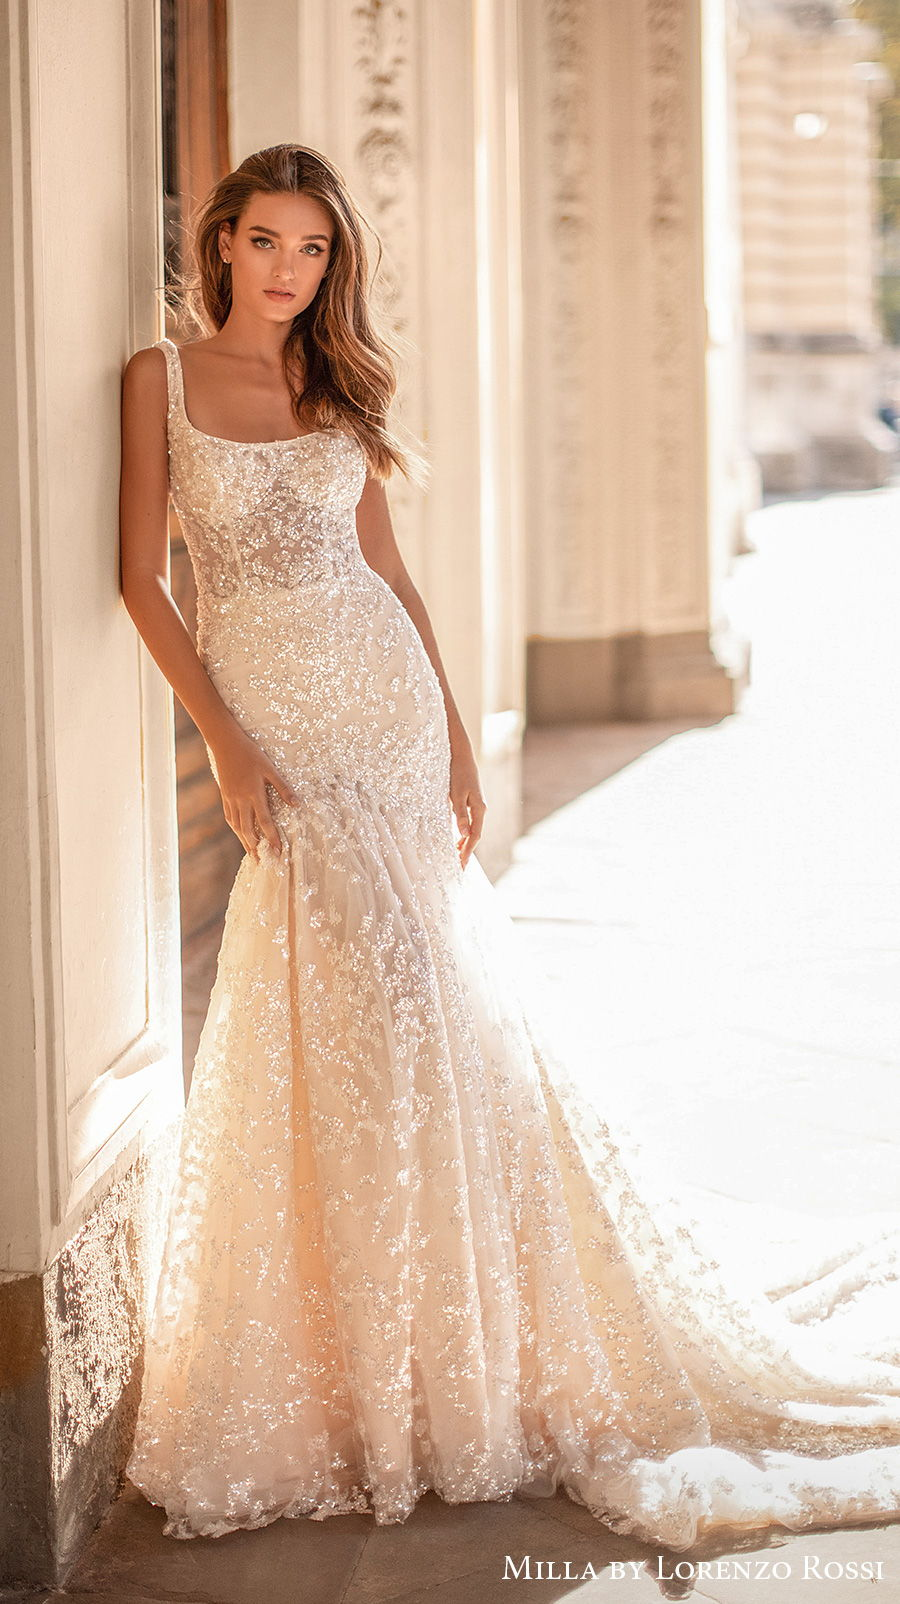 milla lorenzo rossi 2021 bridal sleeveless square neckline full embellishment glitter glamorous elegant mermaid wedding dress square back chapel train (irene) mv